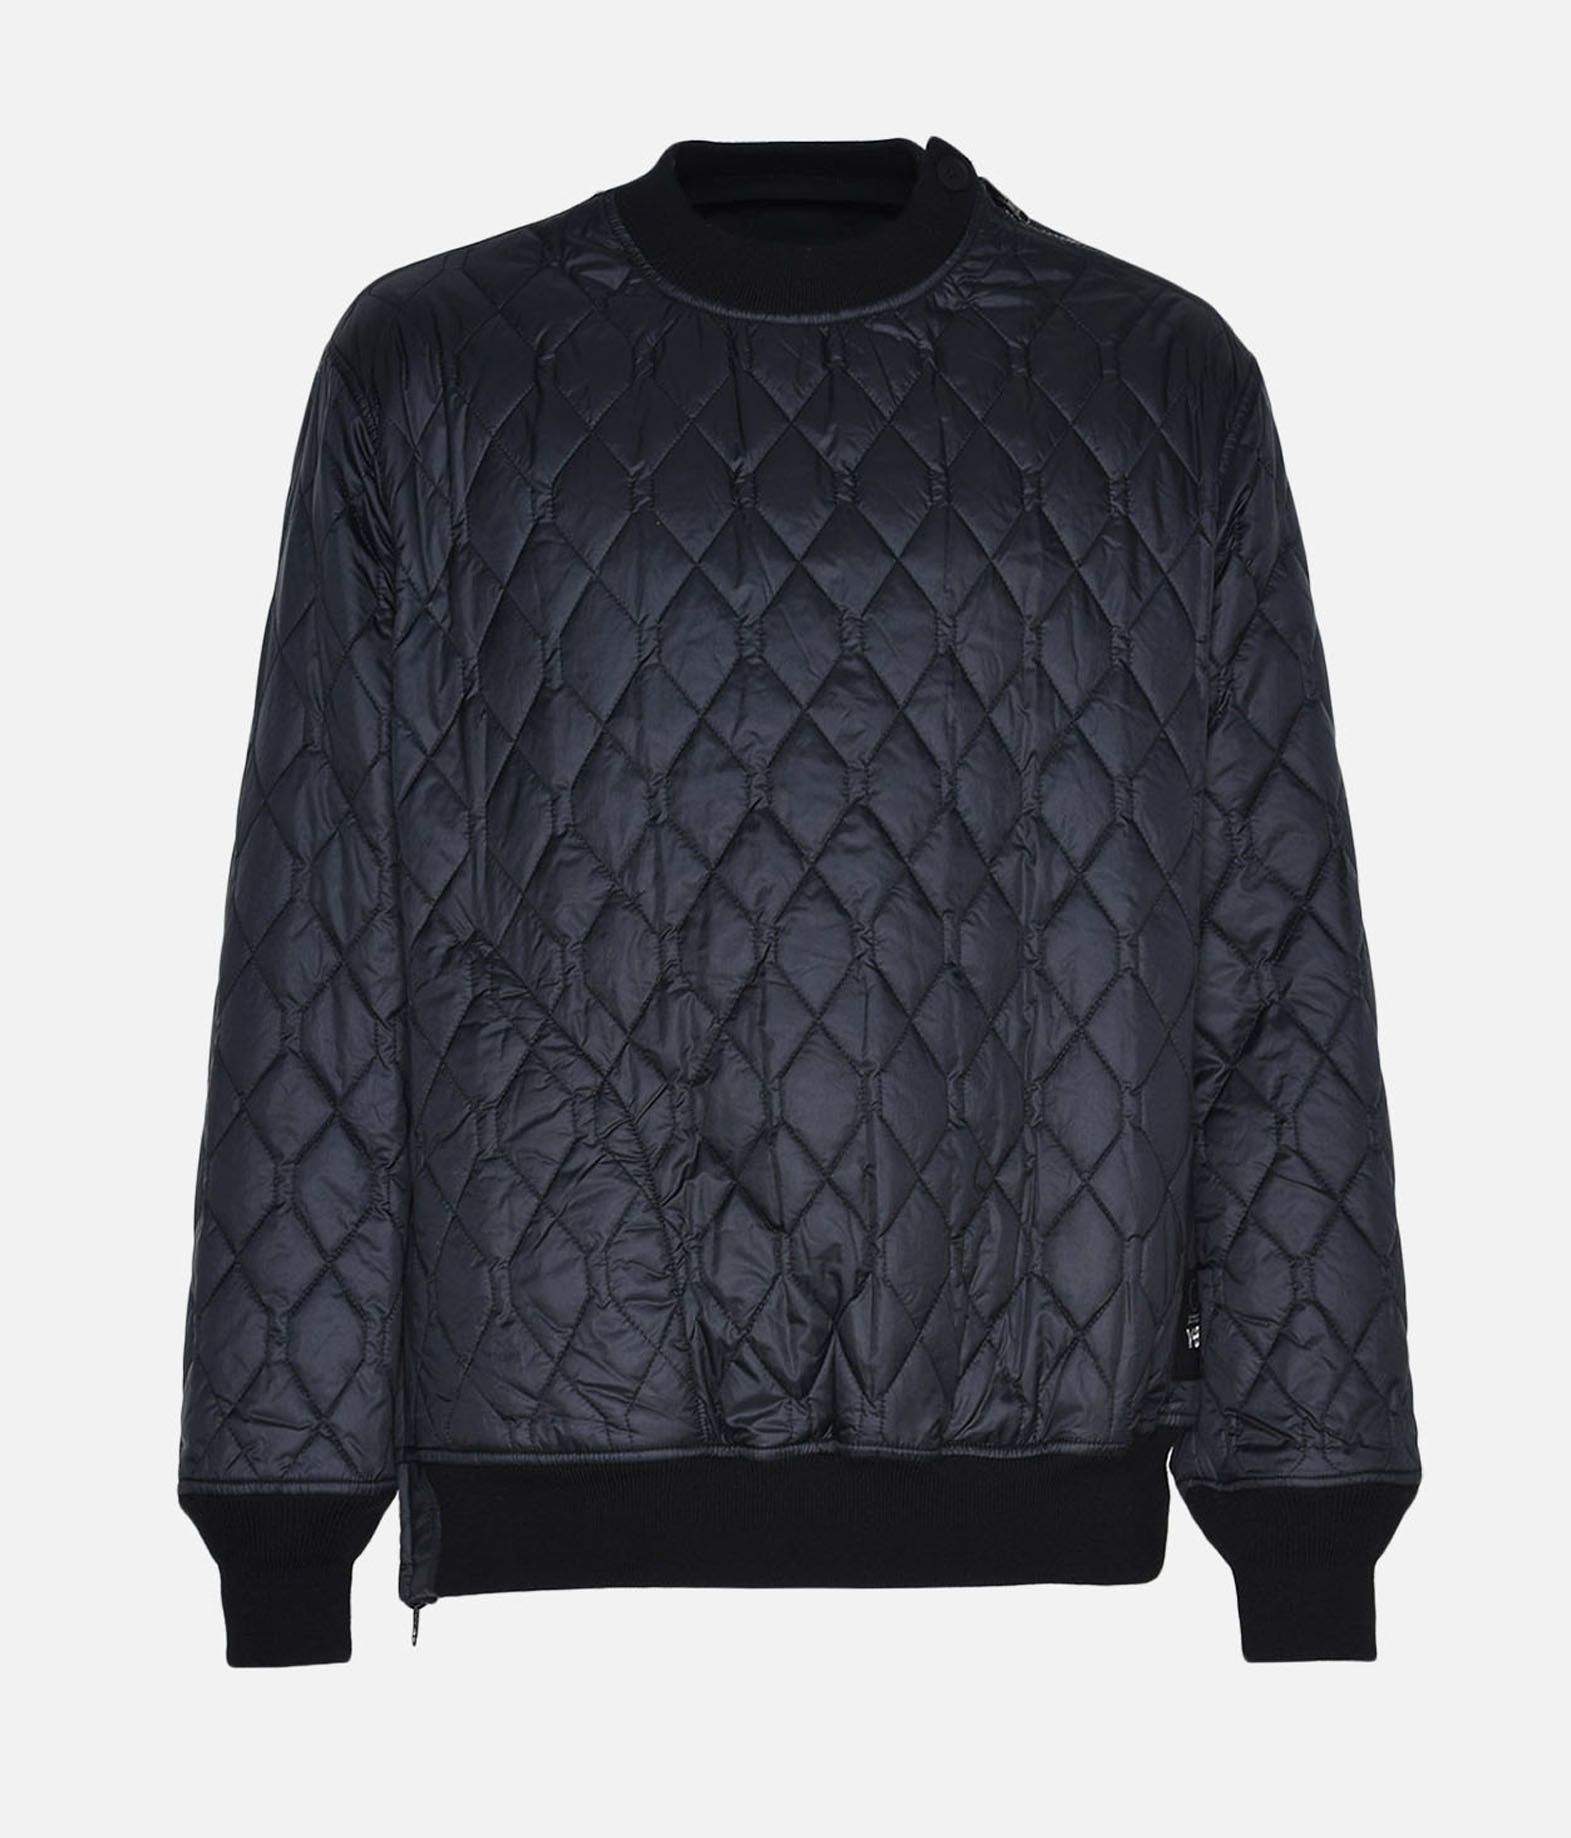 Y-3 Y-3 Quilted Sweater スウェット メンズ f